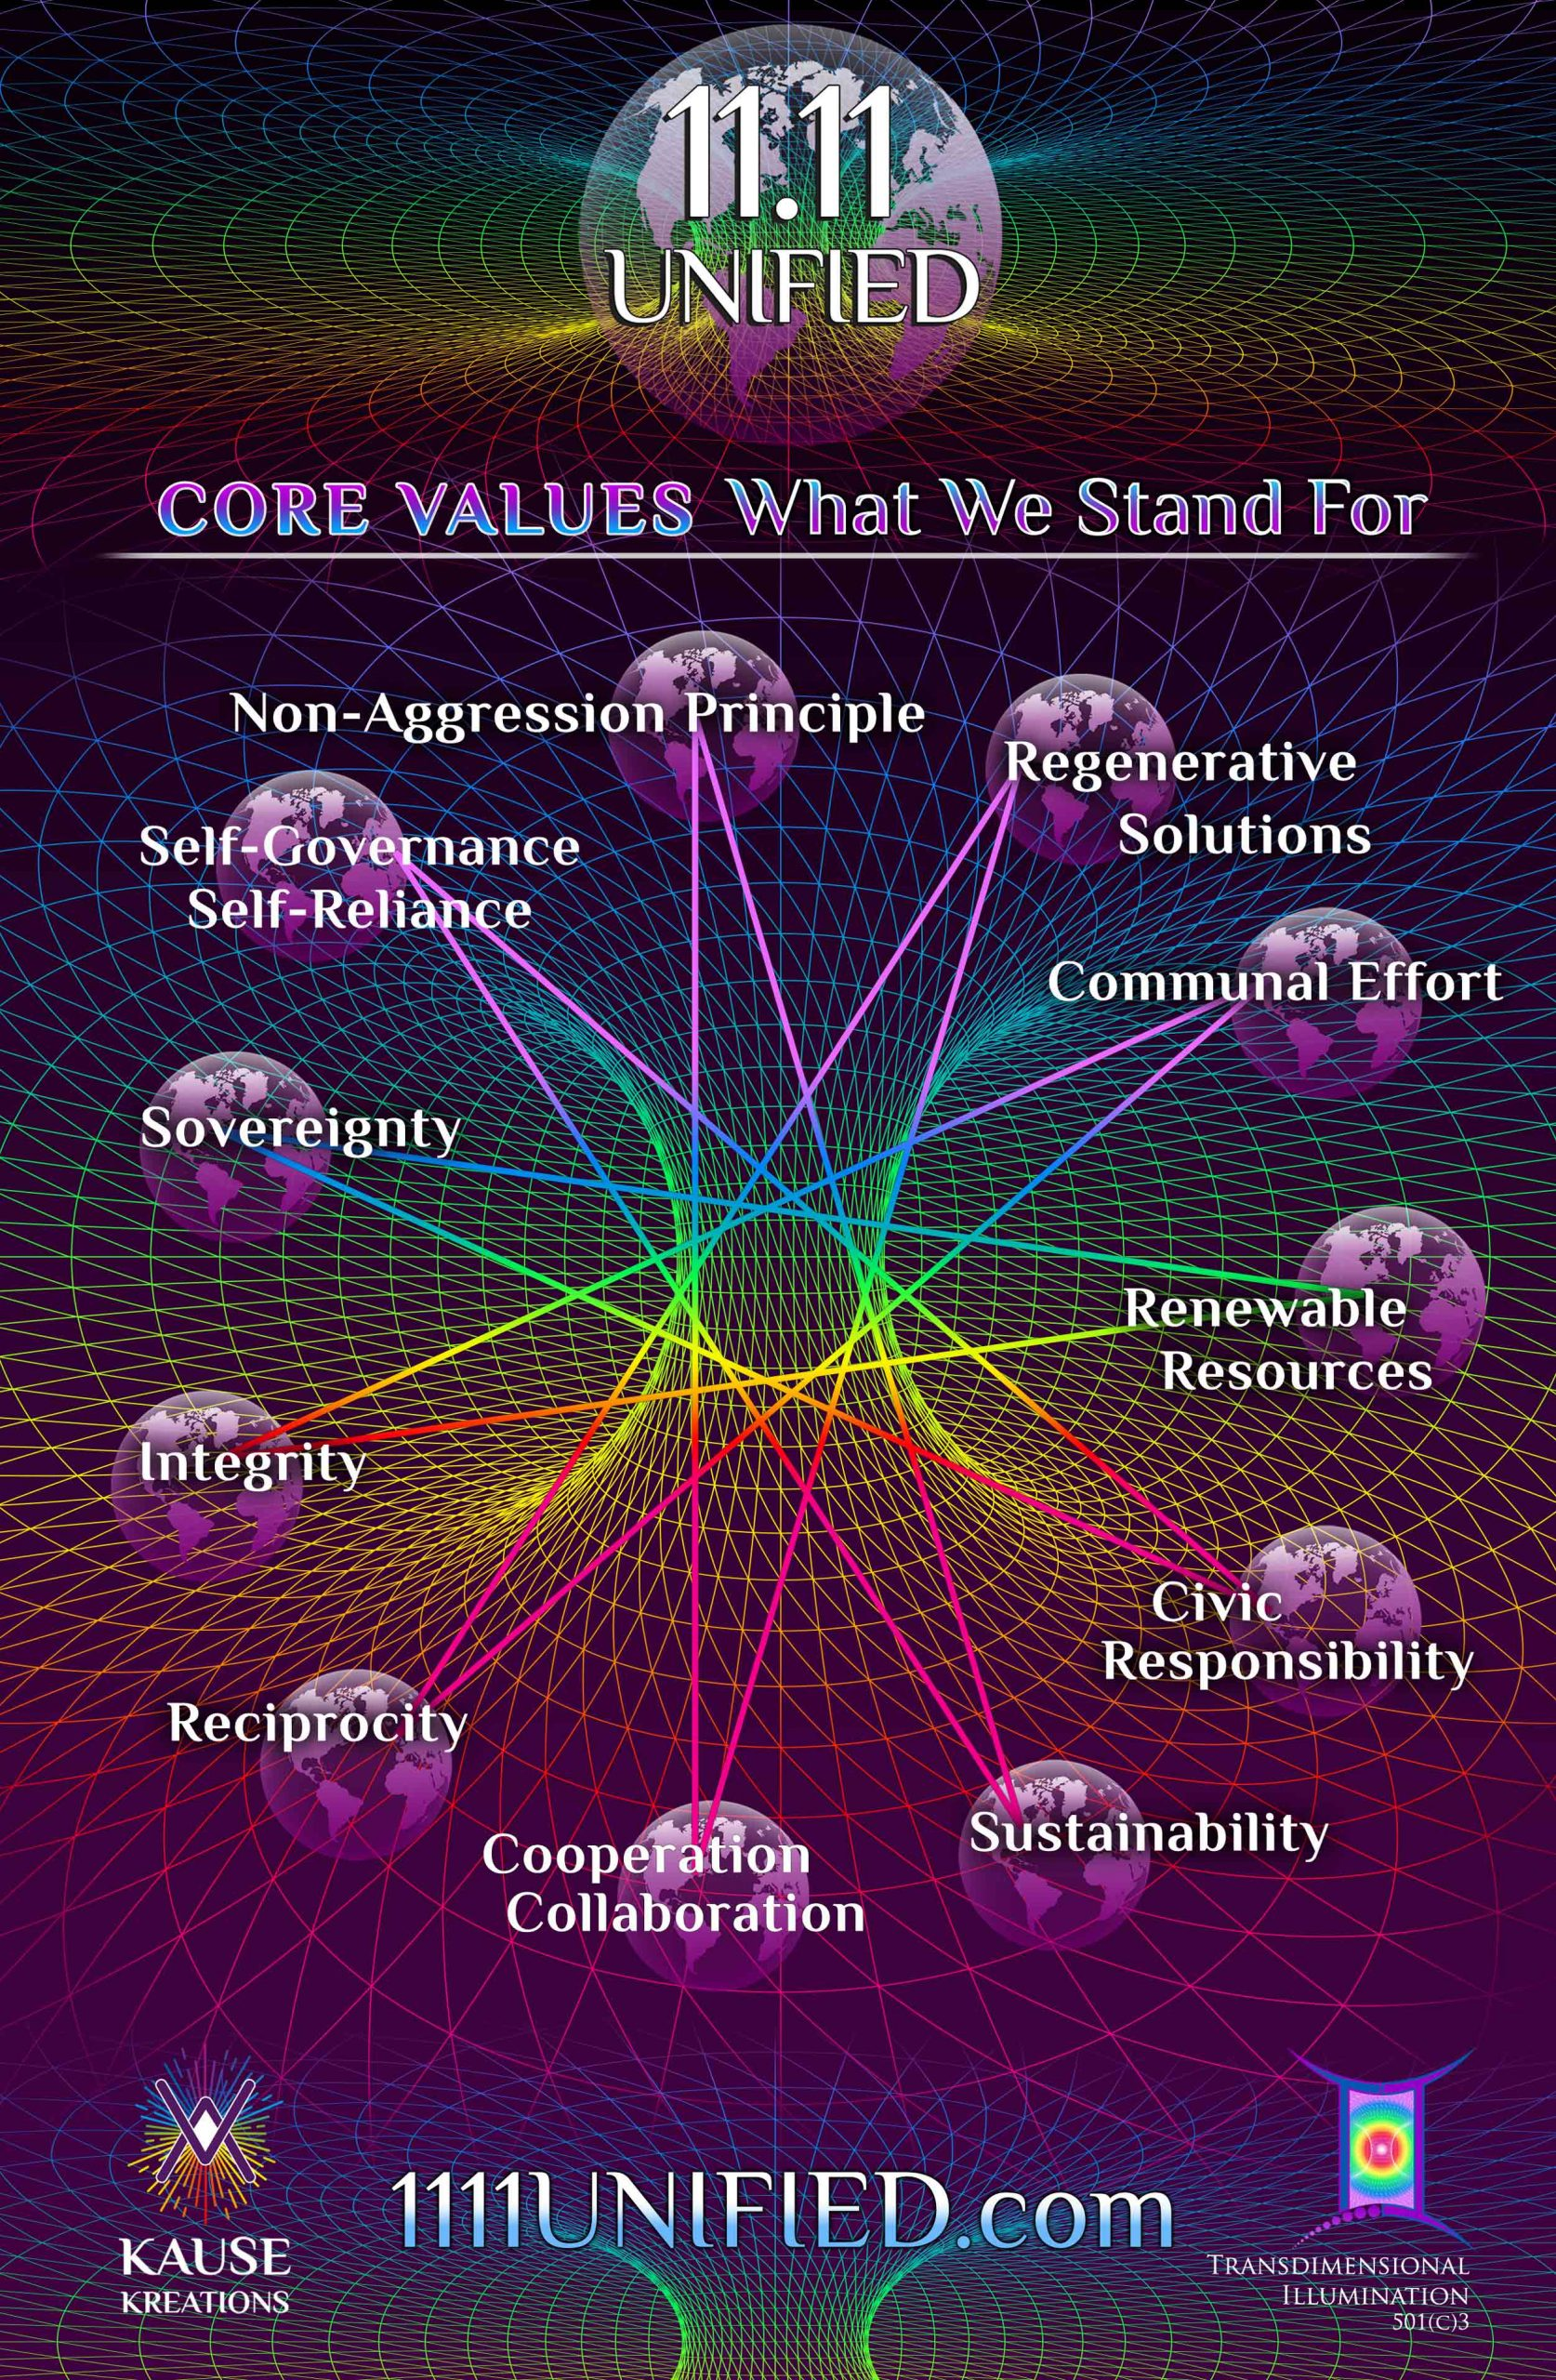 Core Values 11-11 Unified